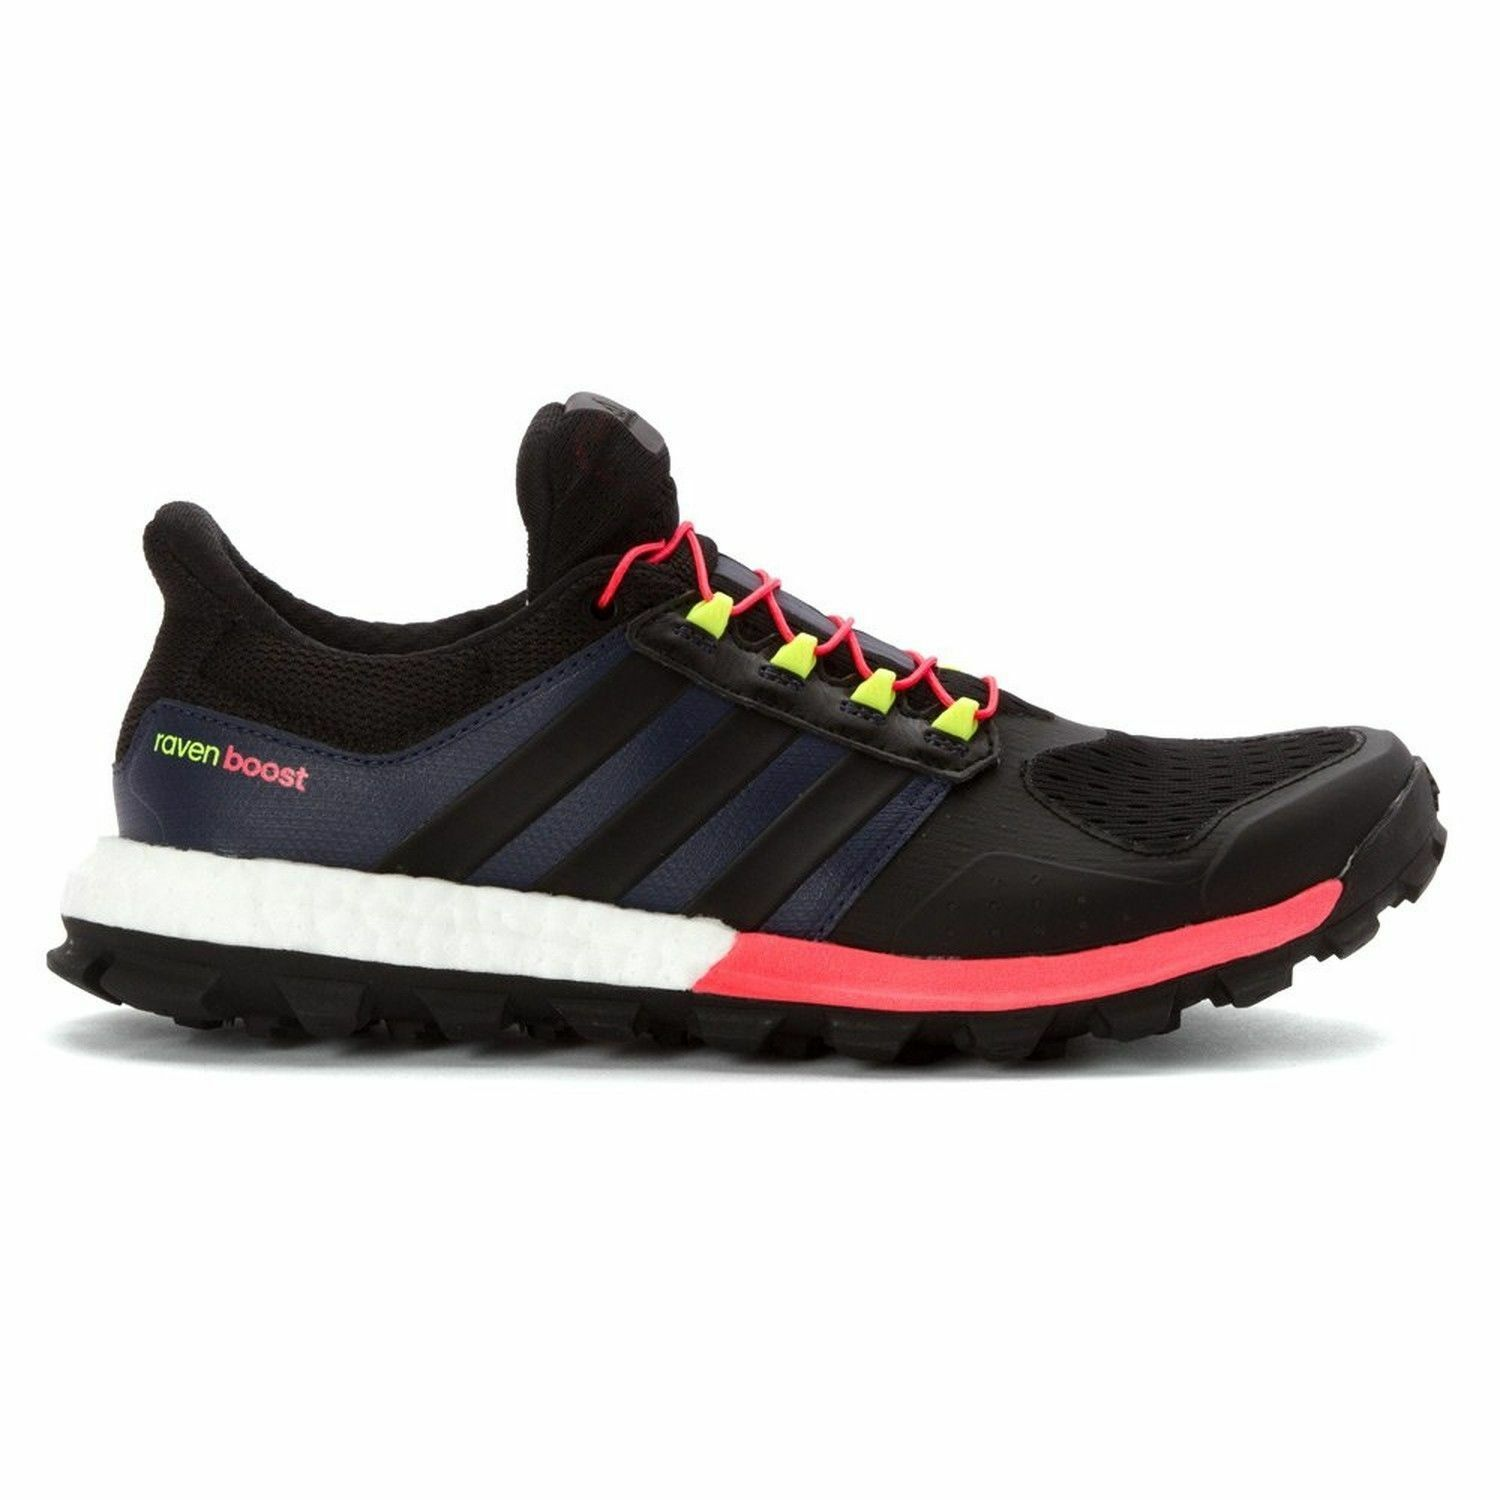 buy popular 4aa44 3d802 adidas Adistar Raven Boost Womens Trail Running Shoes Size 11 B25108 for  sale online  eBay